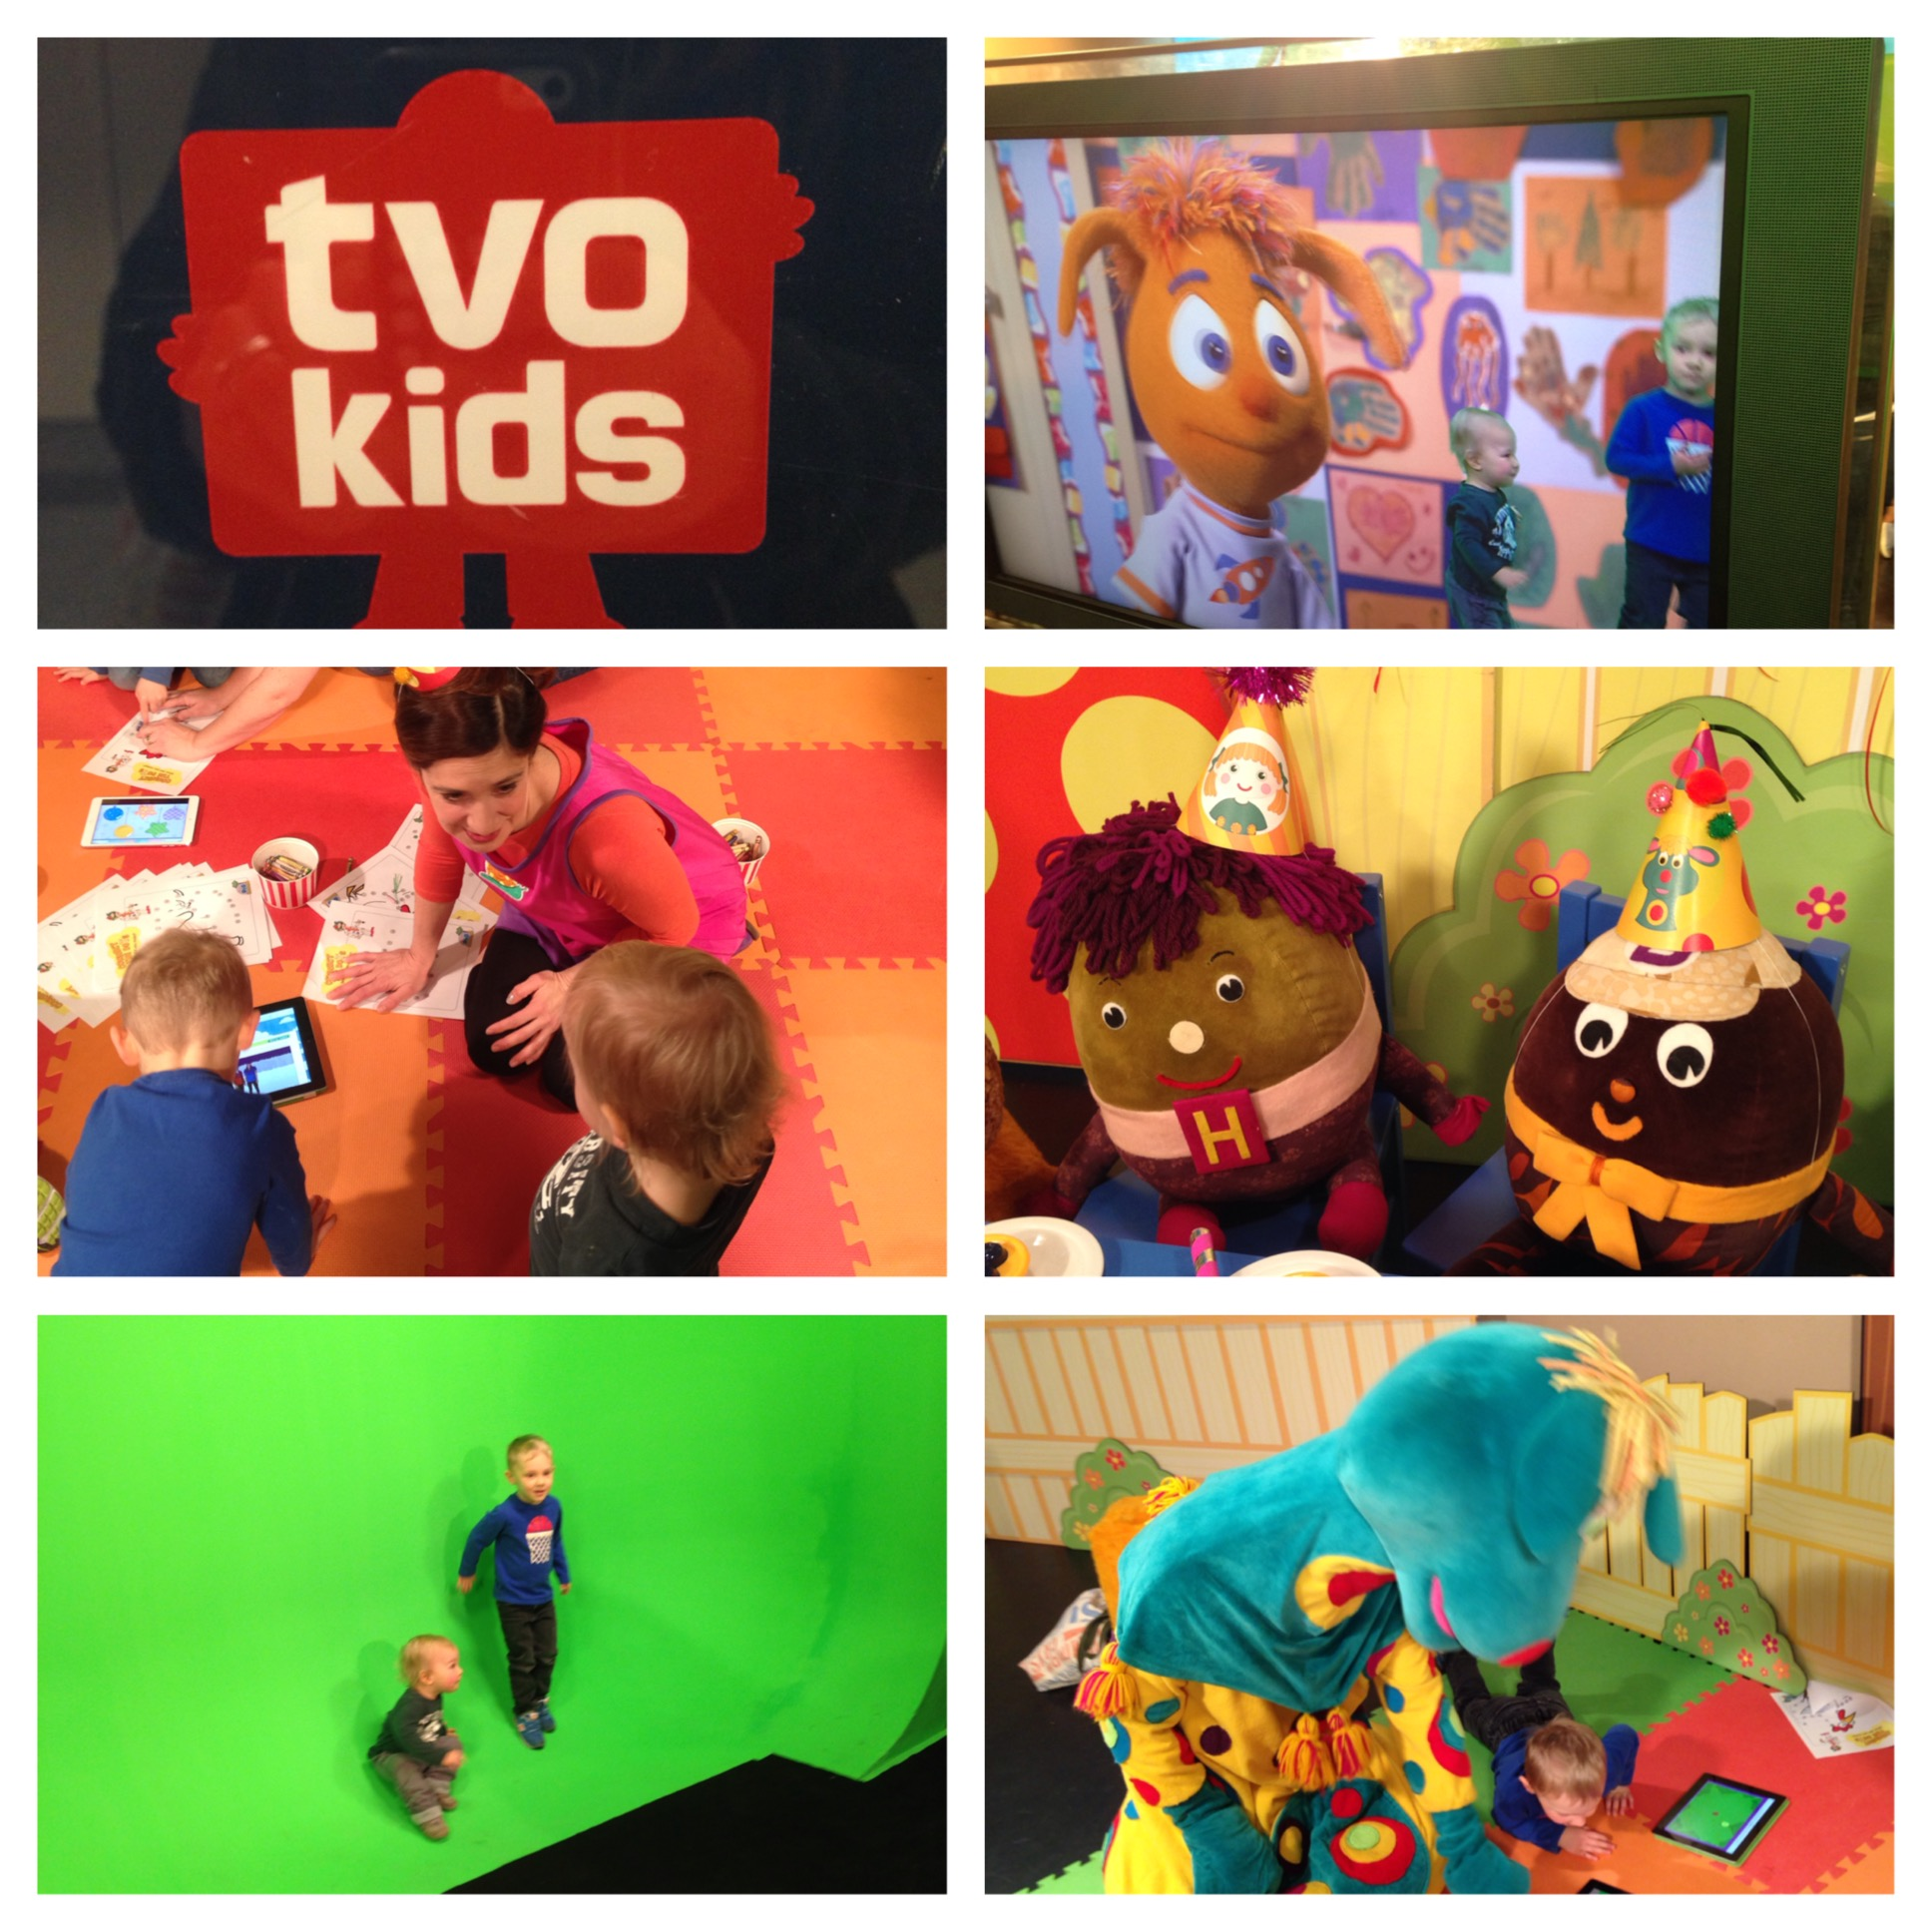 Our fun morning at TVO Kids